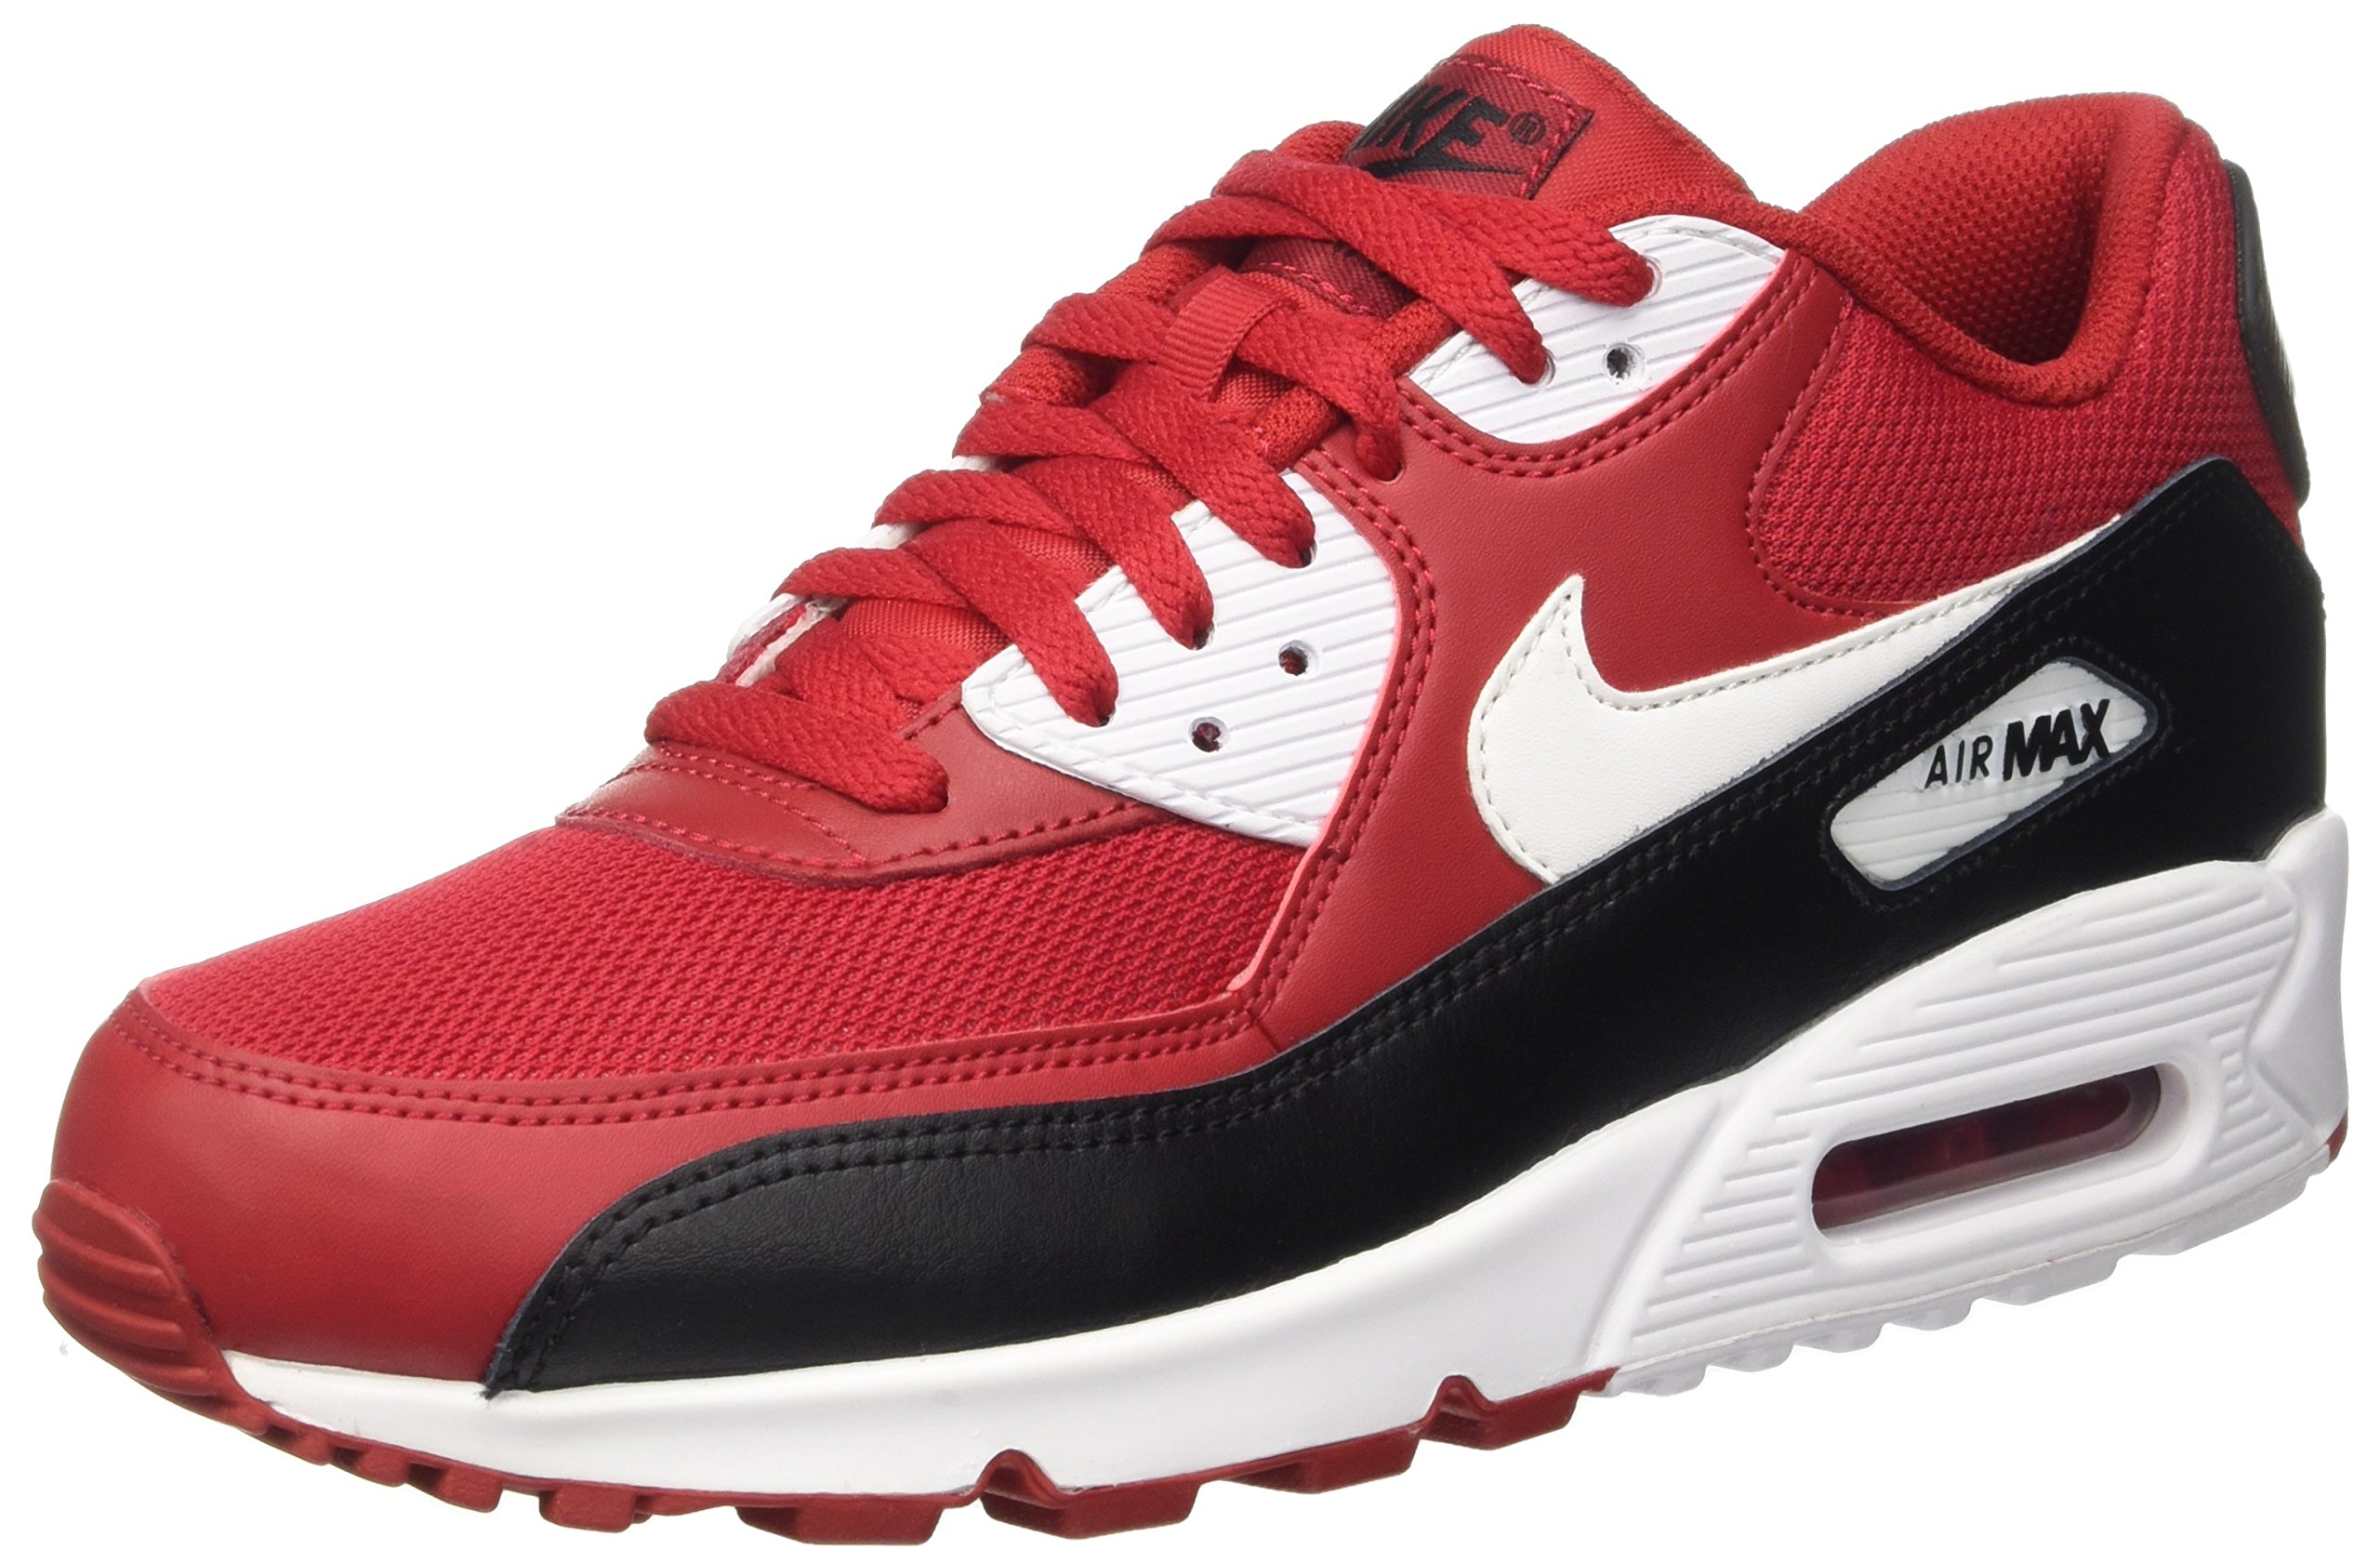 Galleon - NIKE Air Max 90 Essential Mens Running Trainers 537384 Sneakers  Shoes (US 7.5 35eccb9db